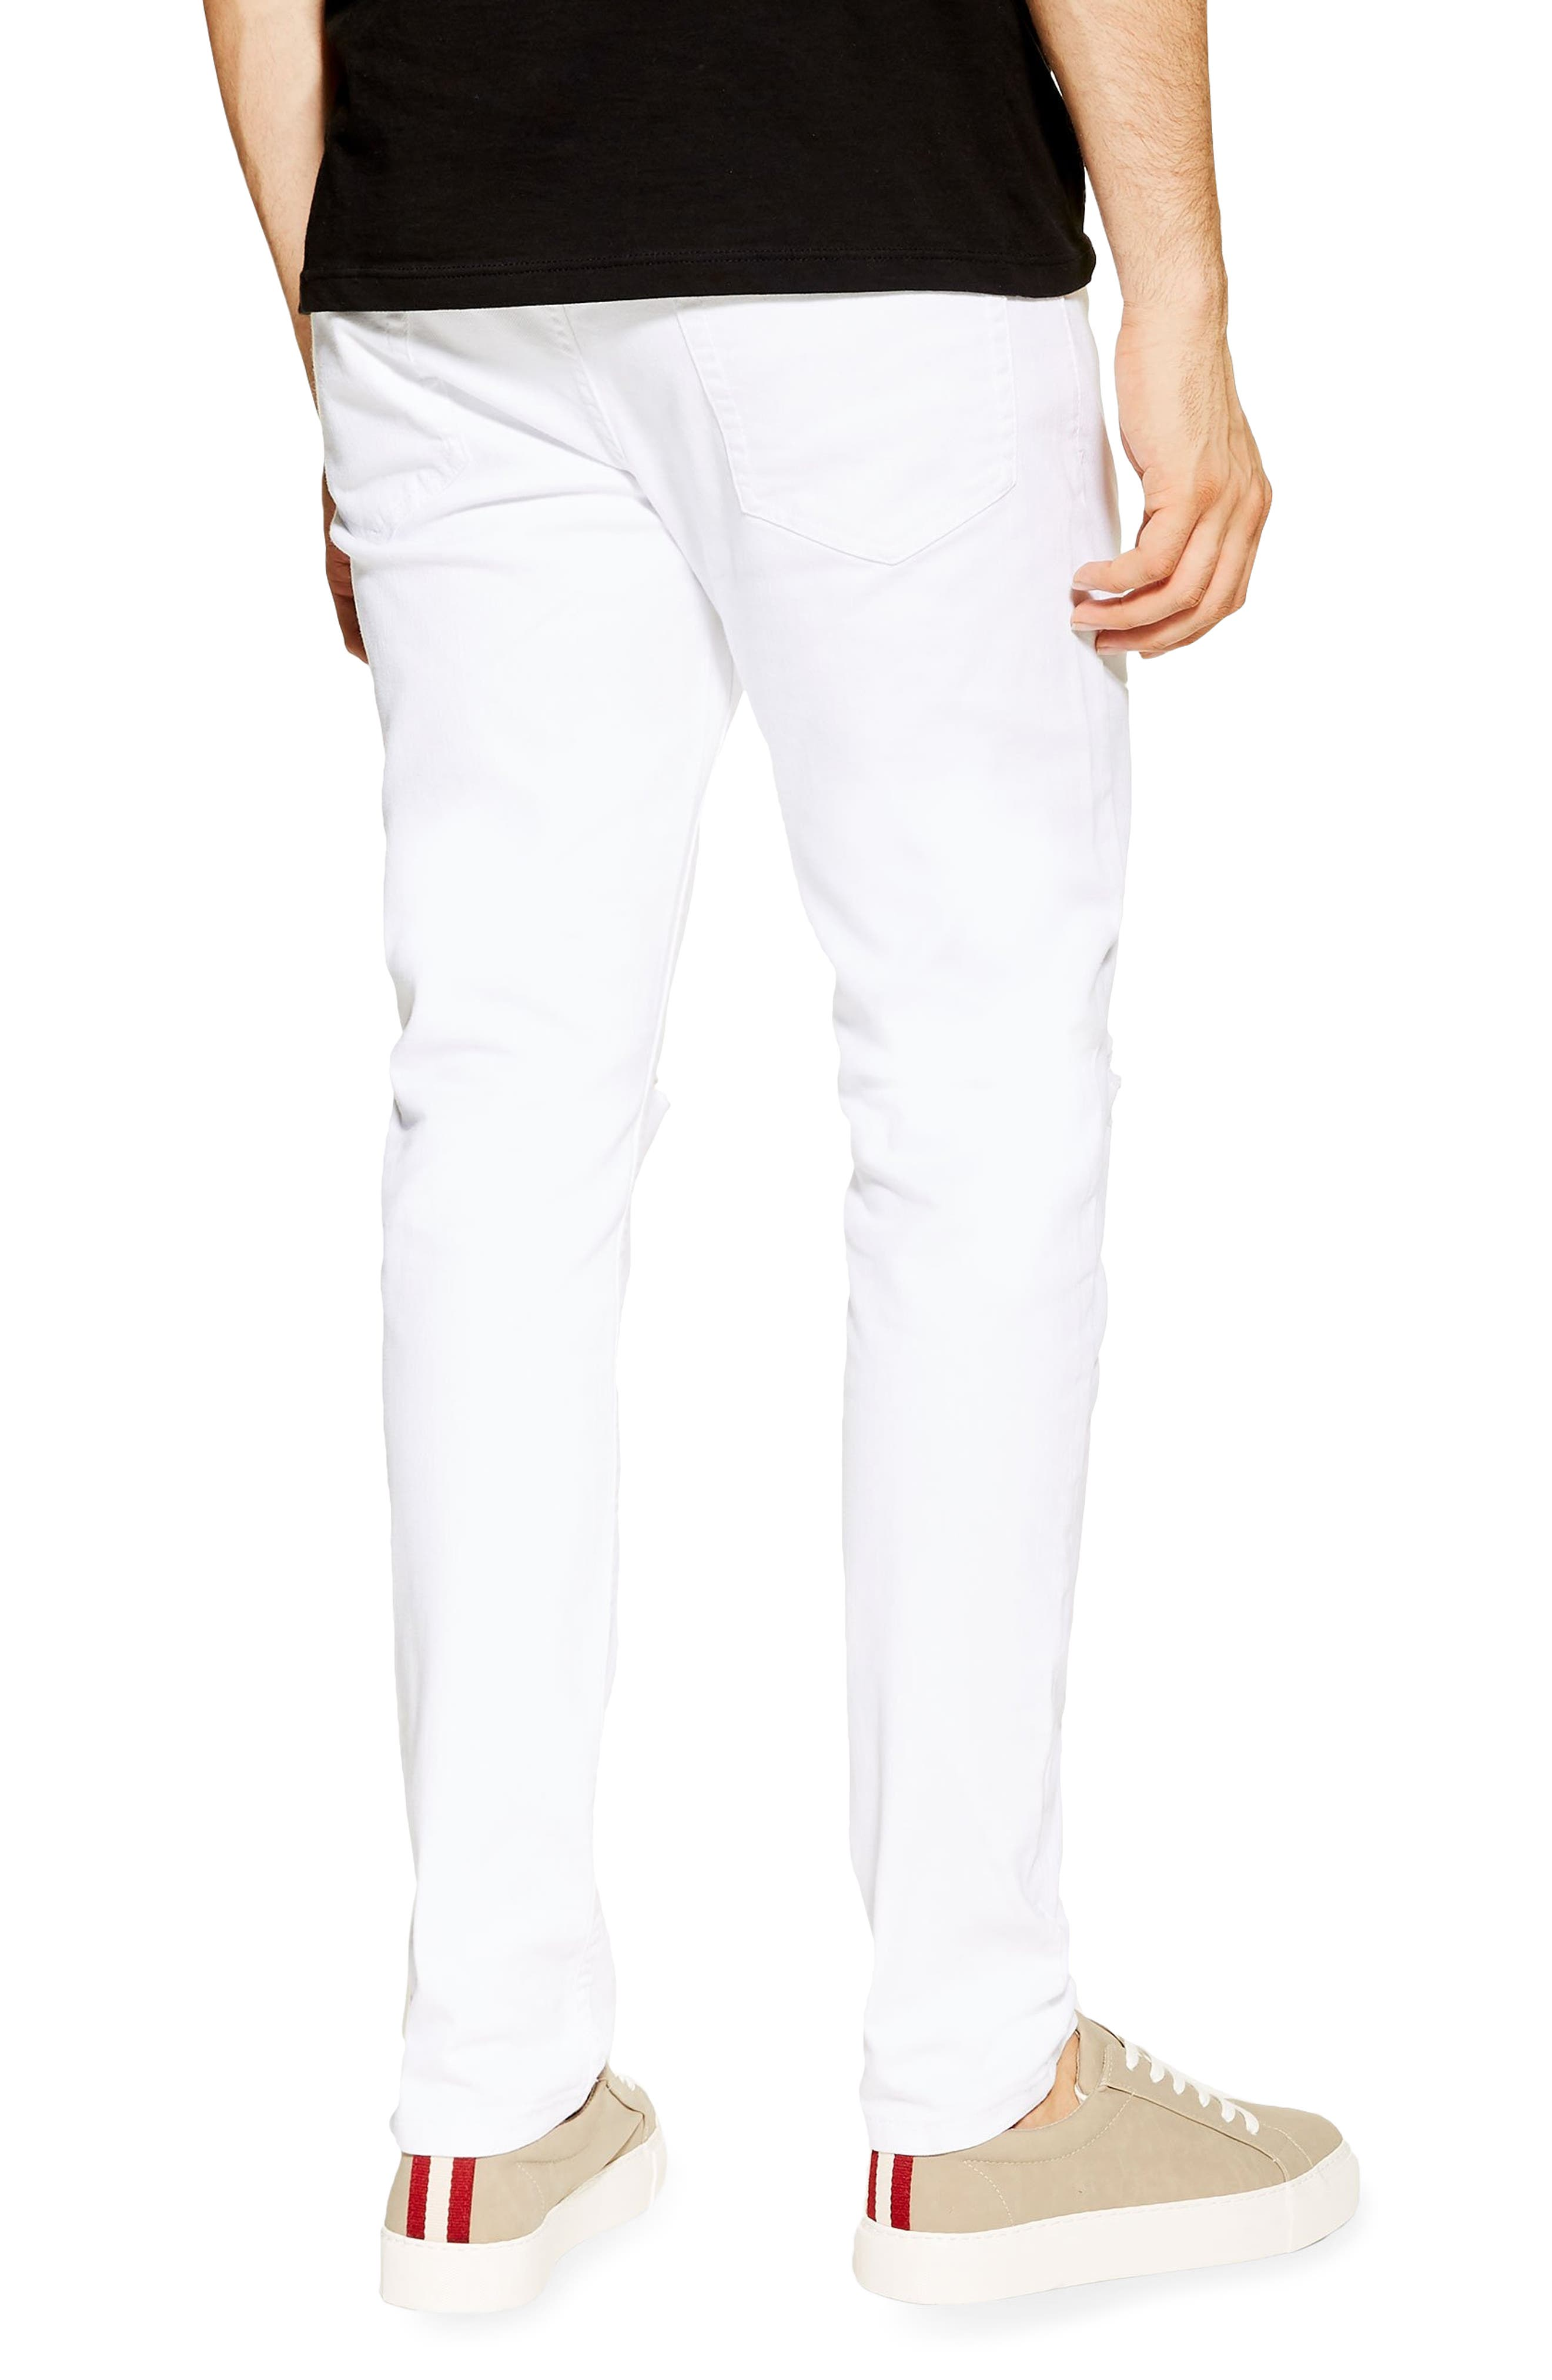 TOPMAN, Ripped Stretch Skinny Fit Jeans, Alternate thumbnail 2, color, WHITE